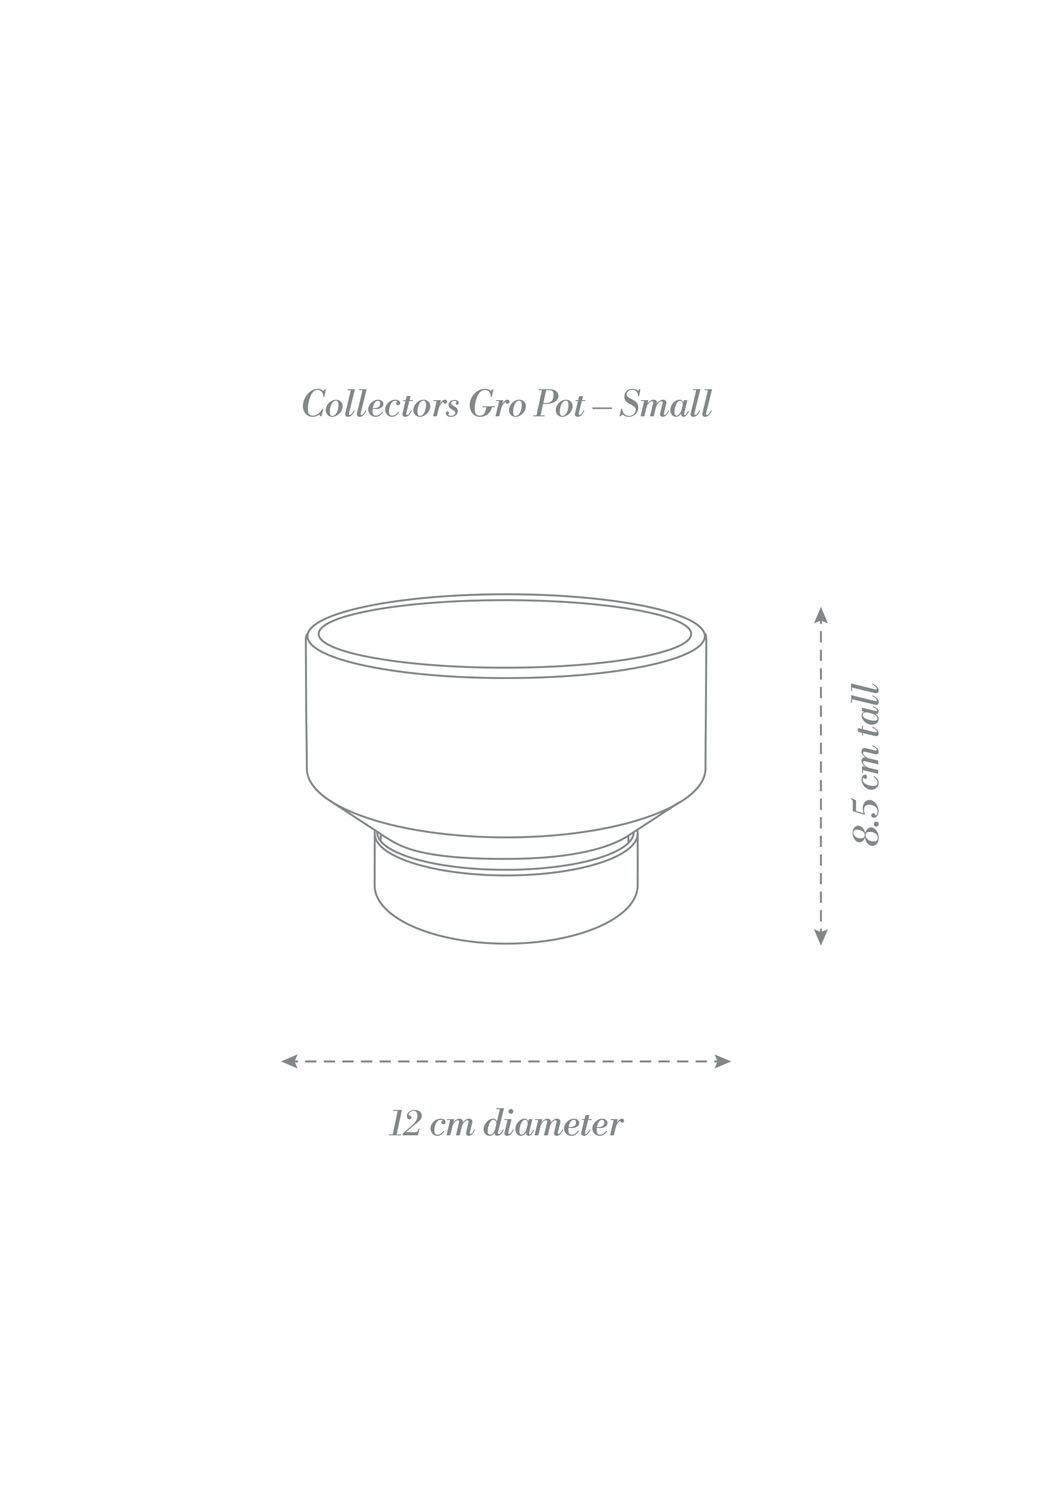 Angus & Celeste Collectors Gro Pot Small Product Diagram